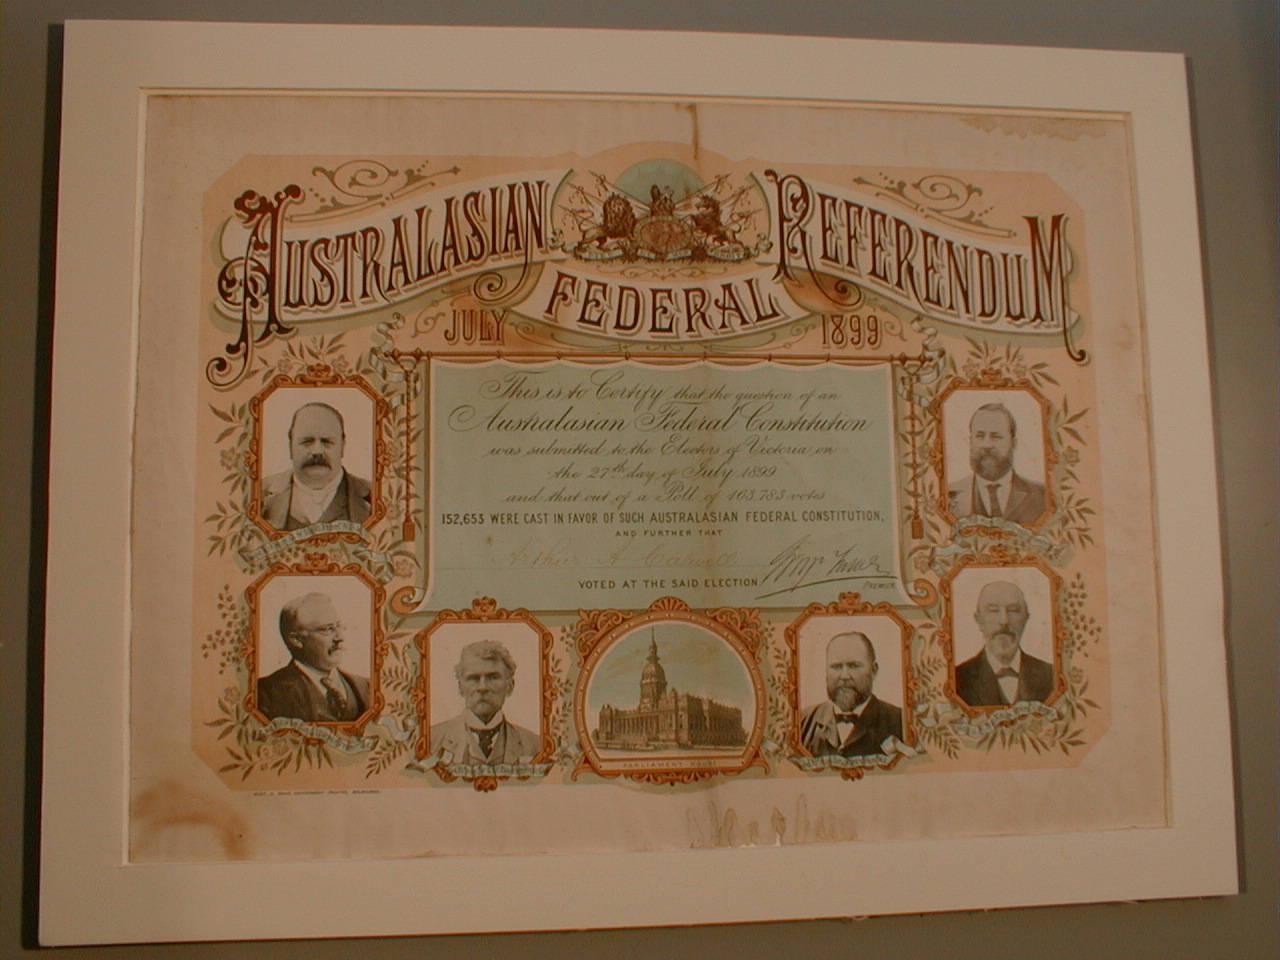 This poster, featuring the six Colonial Premiers